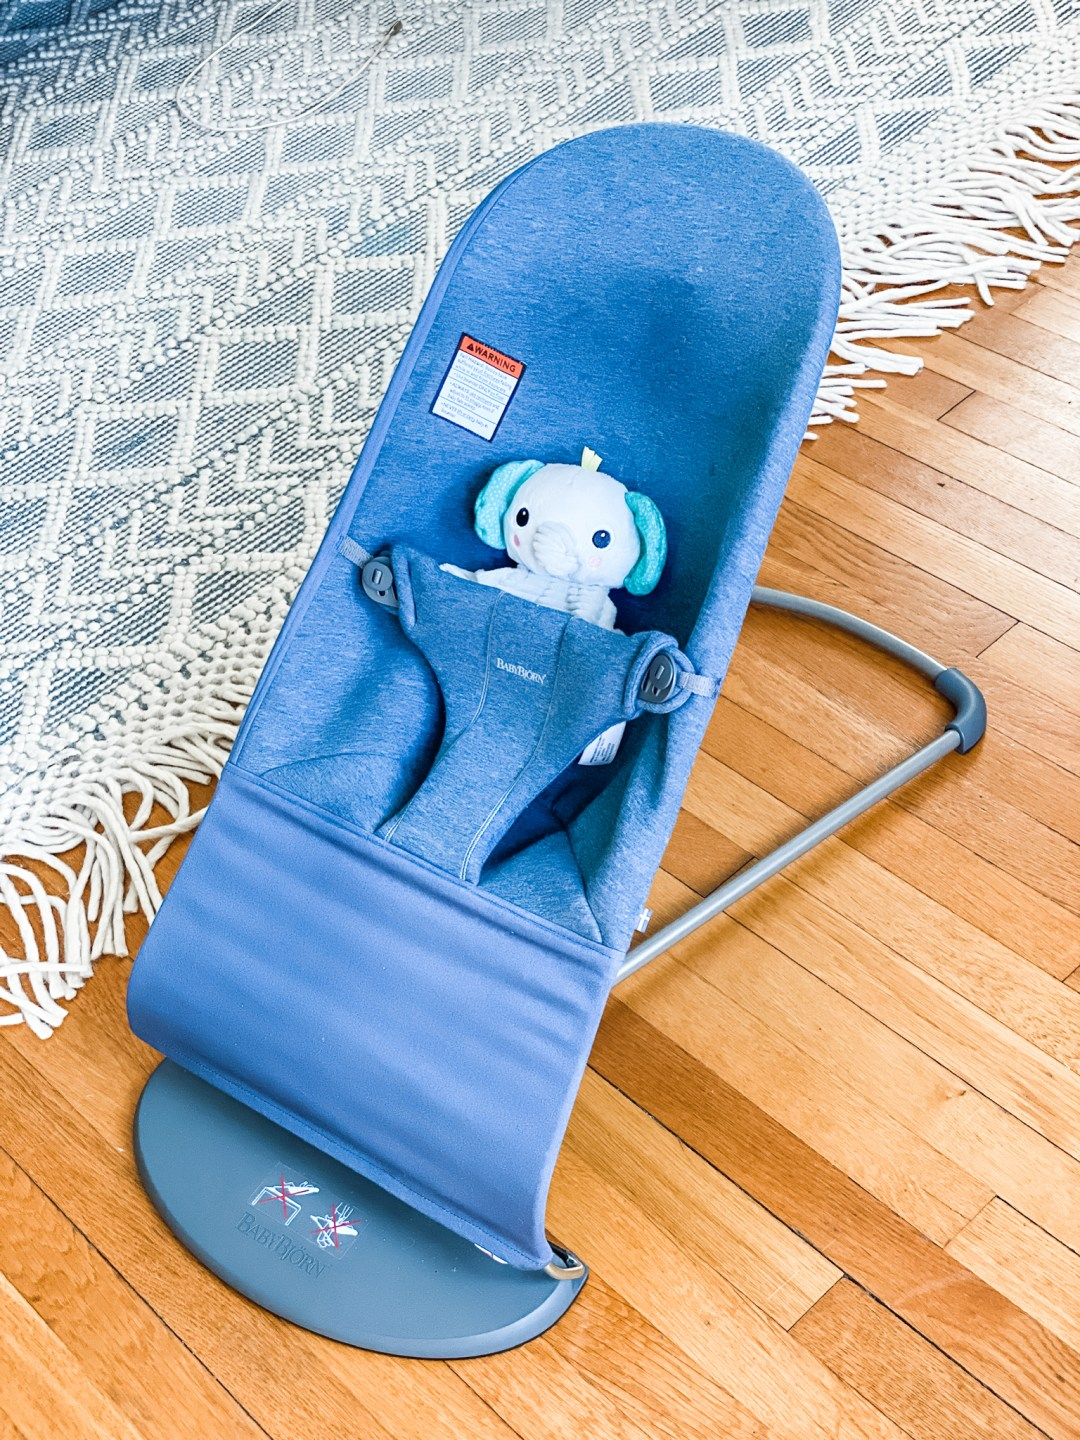 BabyBjorn Bouncer | What Thomas Loved from 0-6 Months